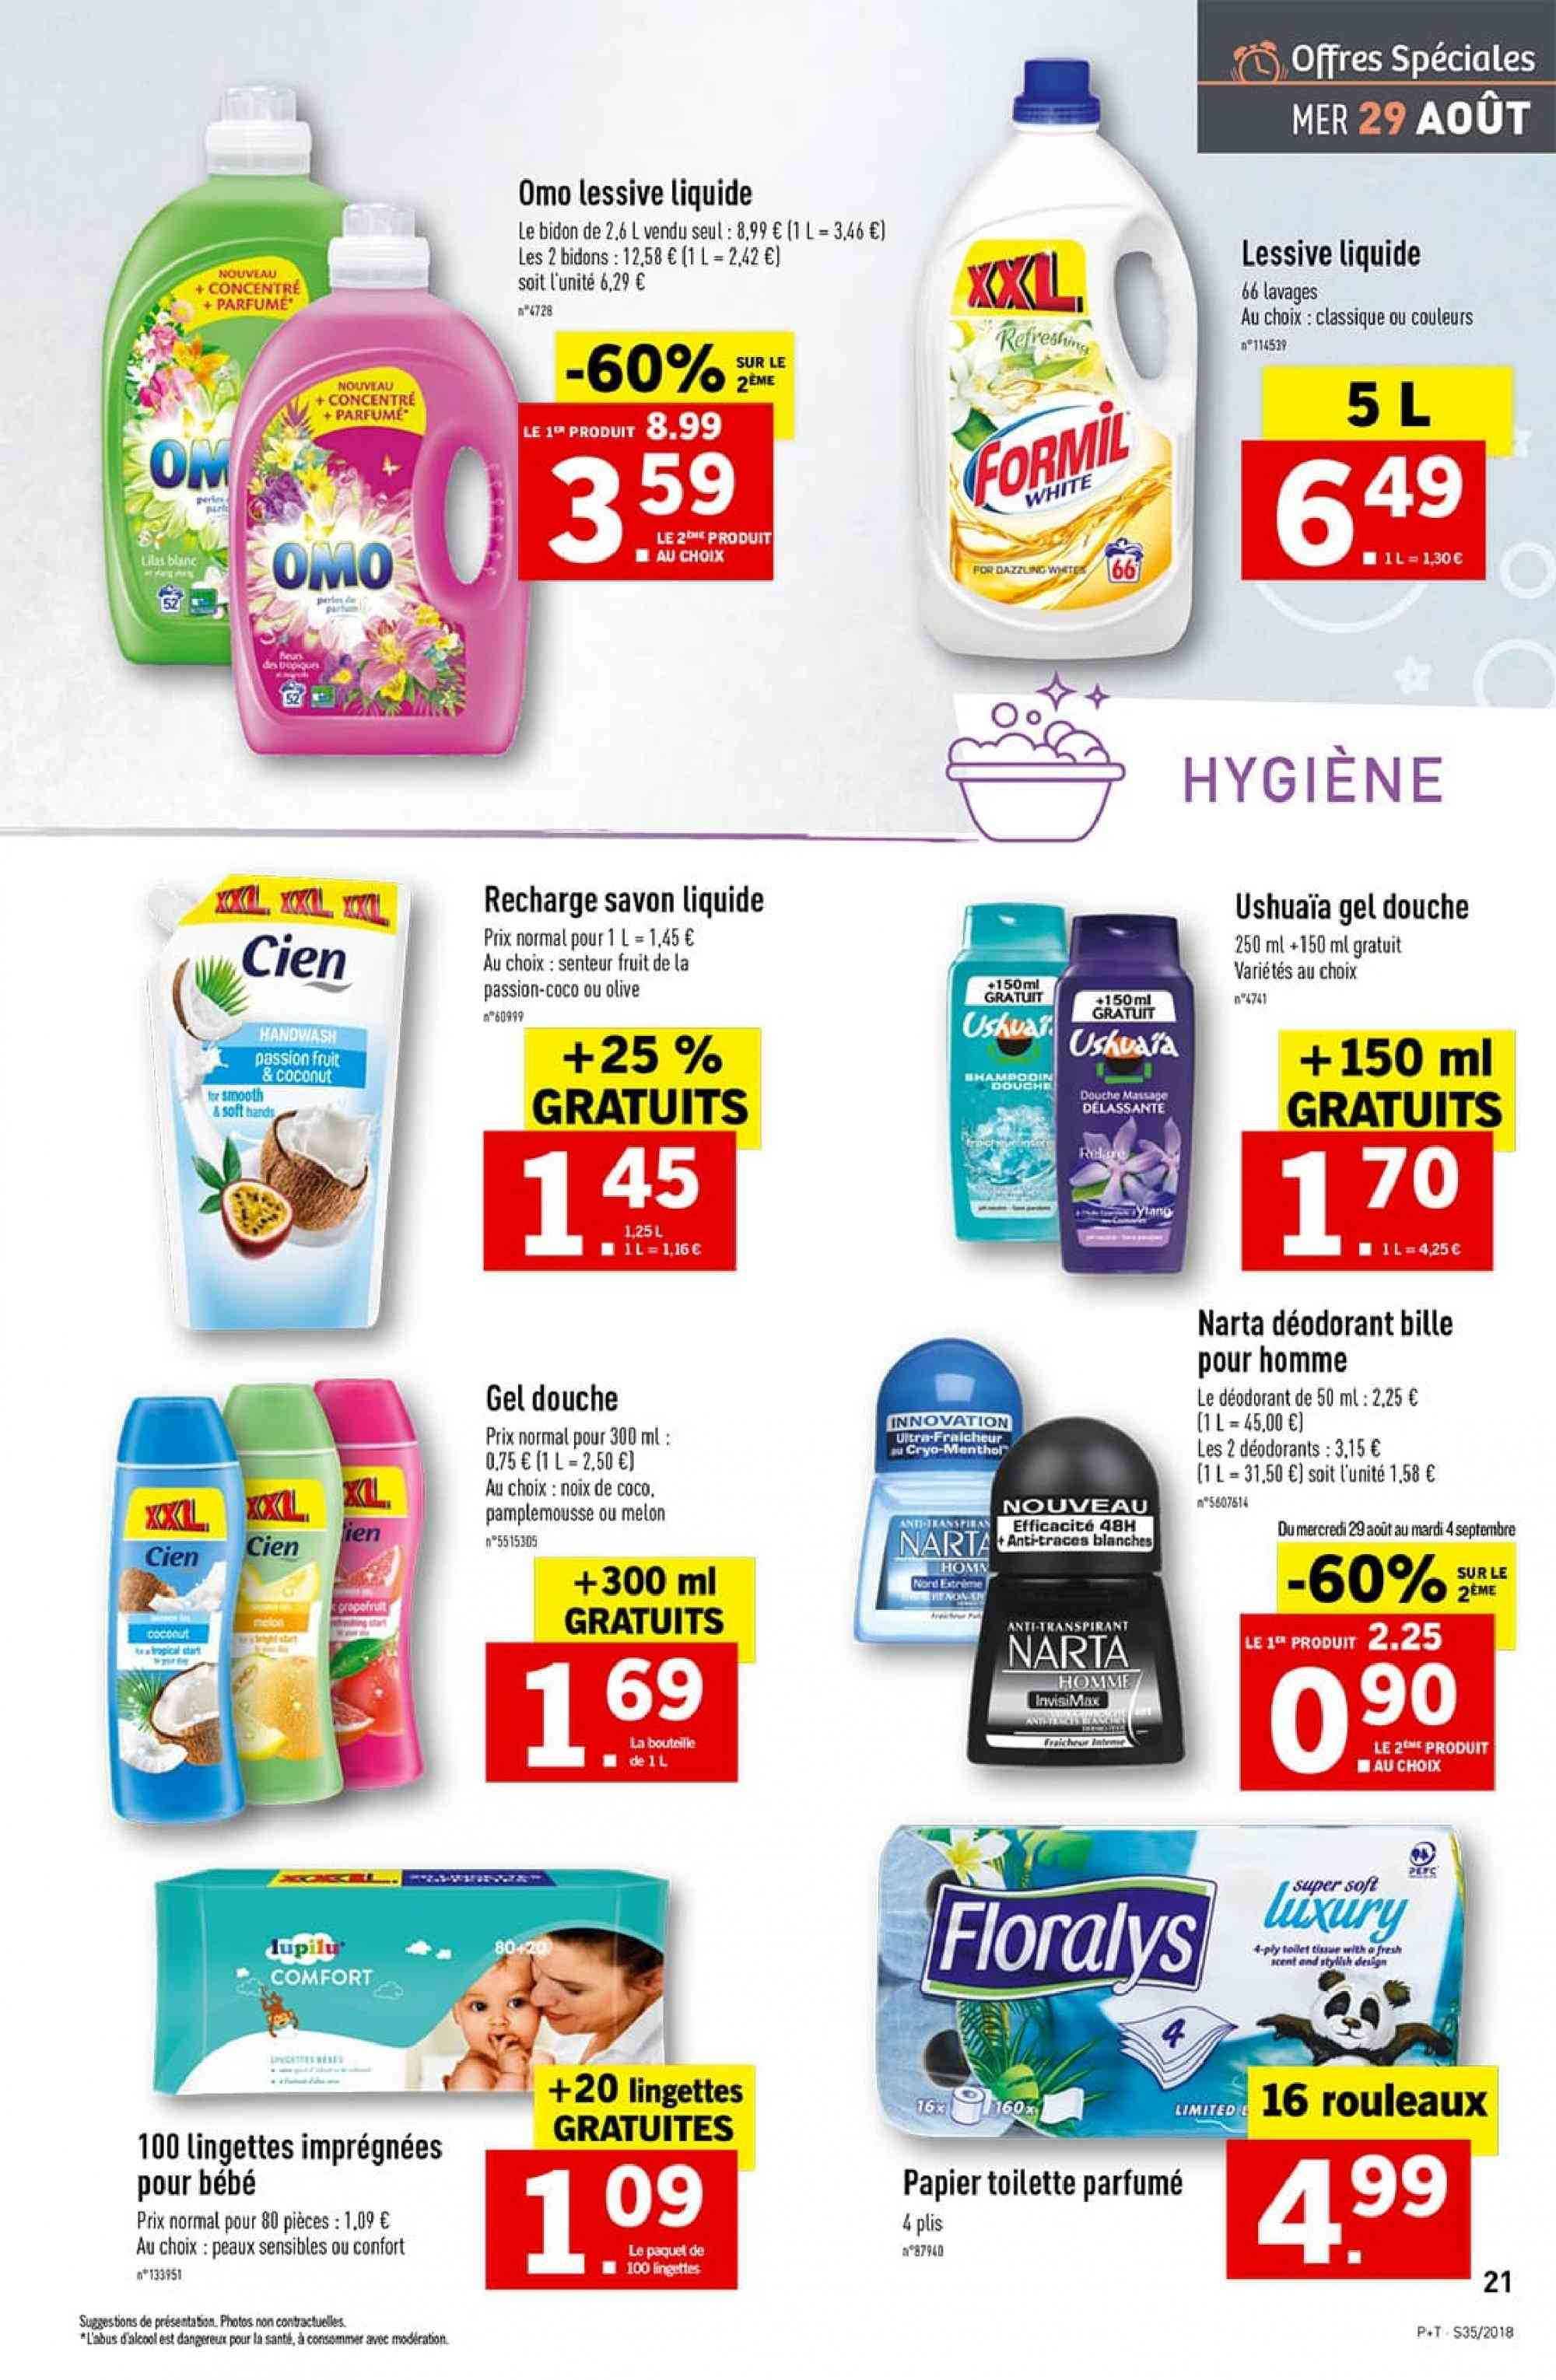 Catalogue Lidl - 29.08.2018 - 04.09.2018. Page 21.